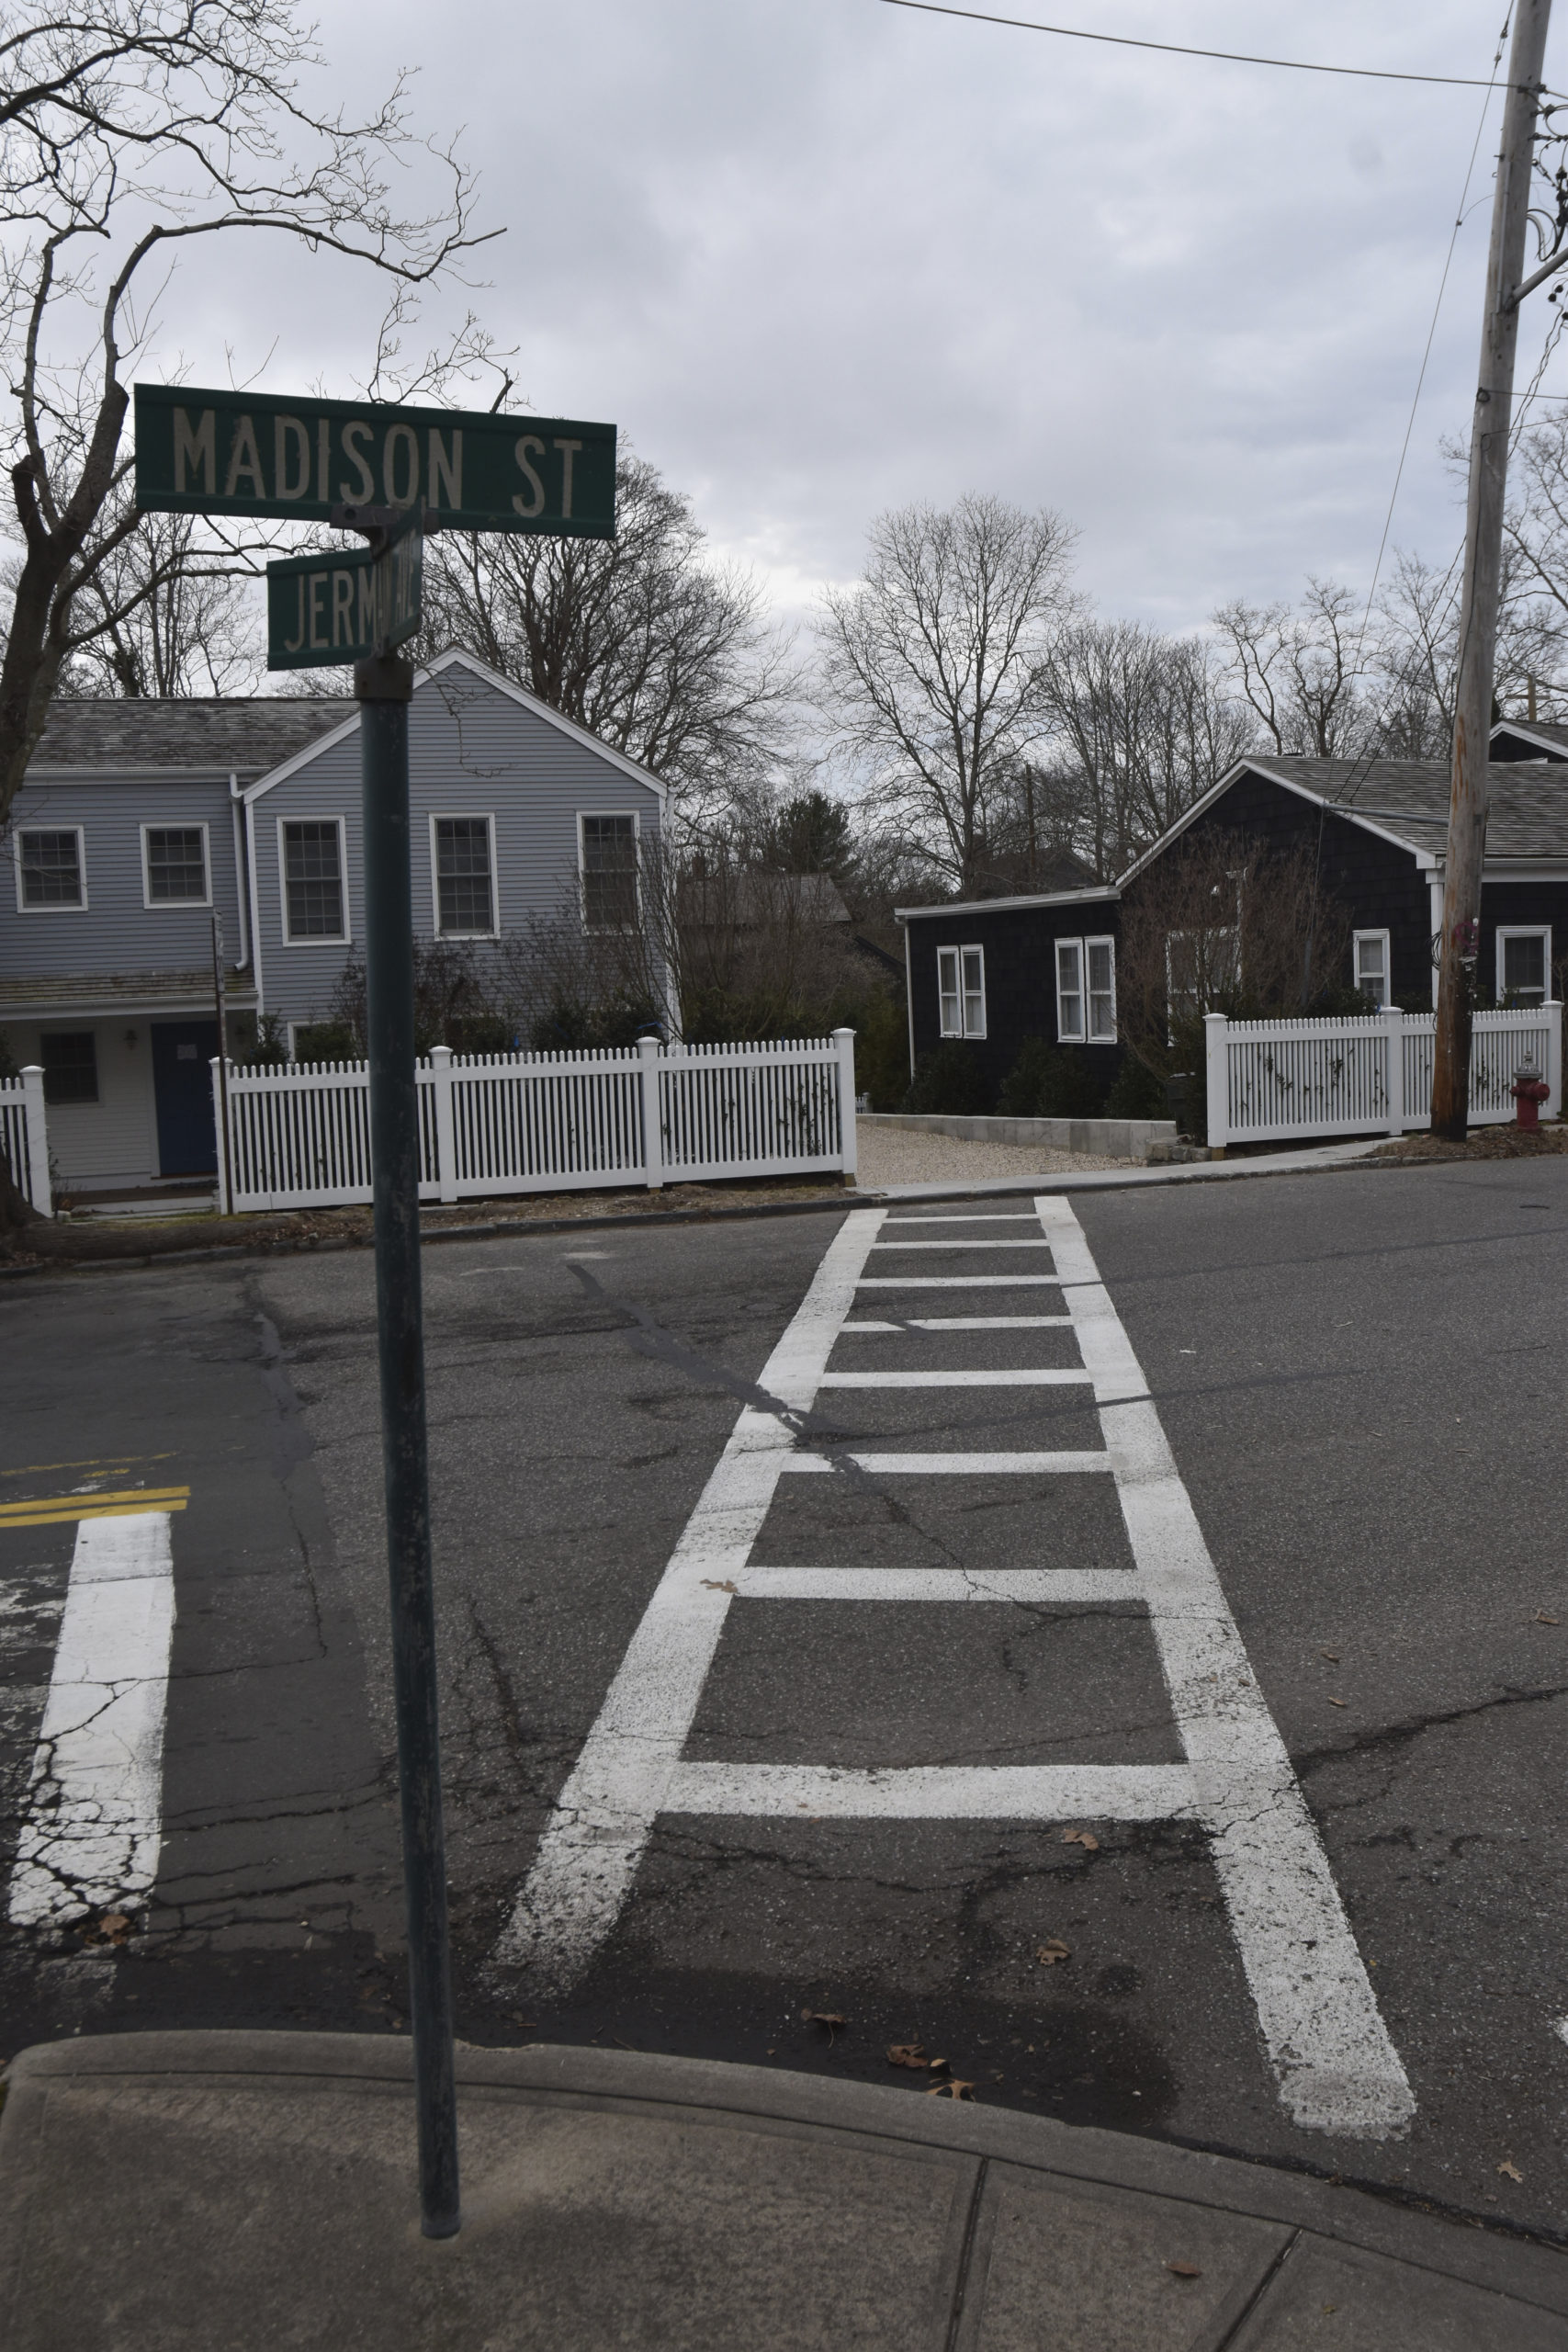 The Sag Harbor Village Board will hold a hearing next month to consider requiring the removal of this curb cut at 200 Madison Street which open into a crosswalk. STEPHEN J. KOTZ